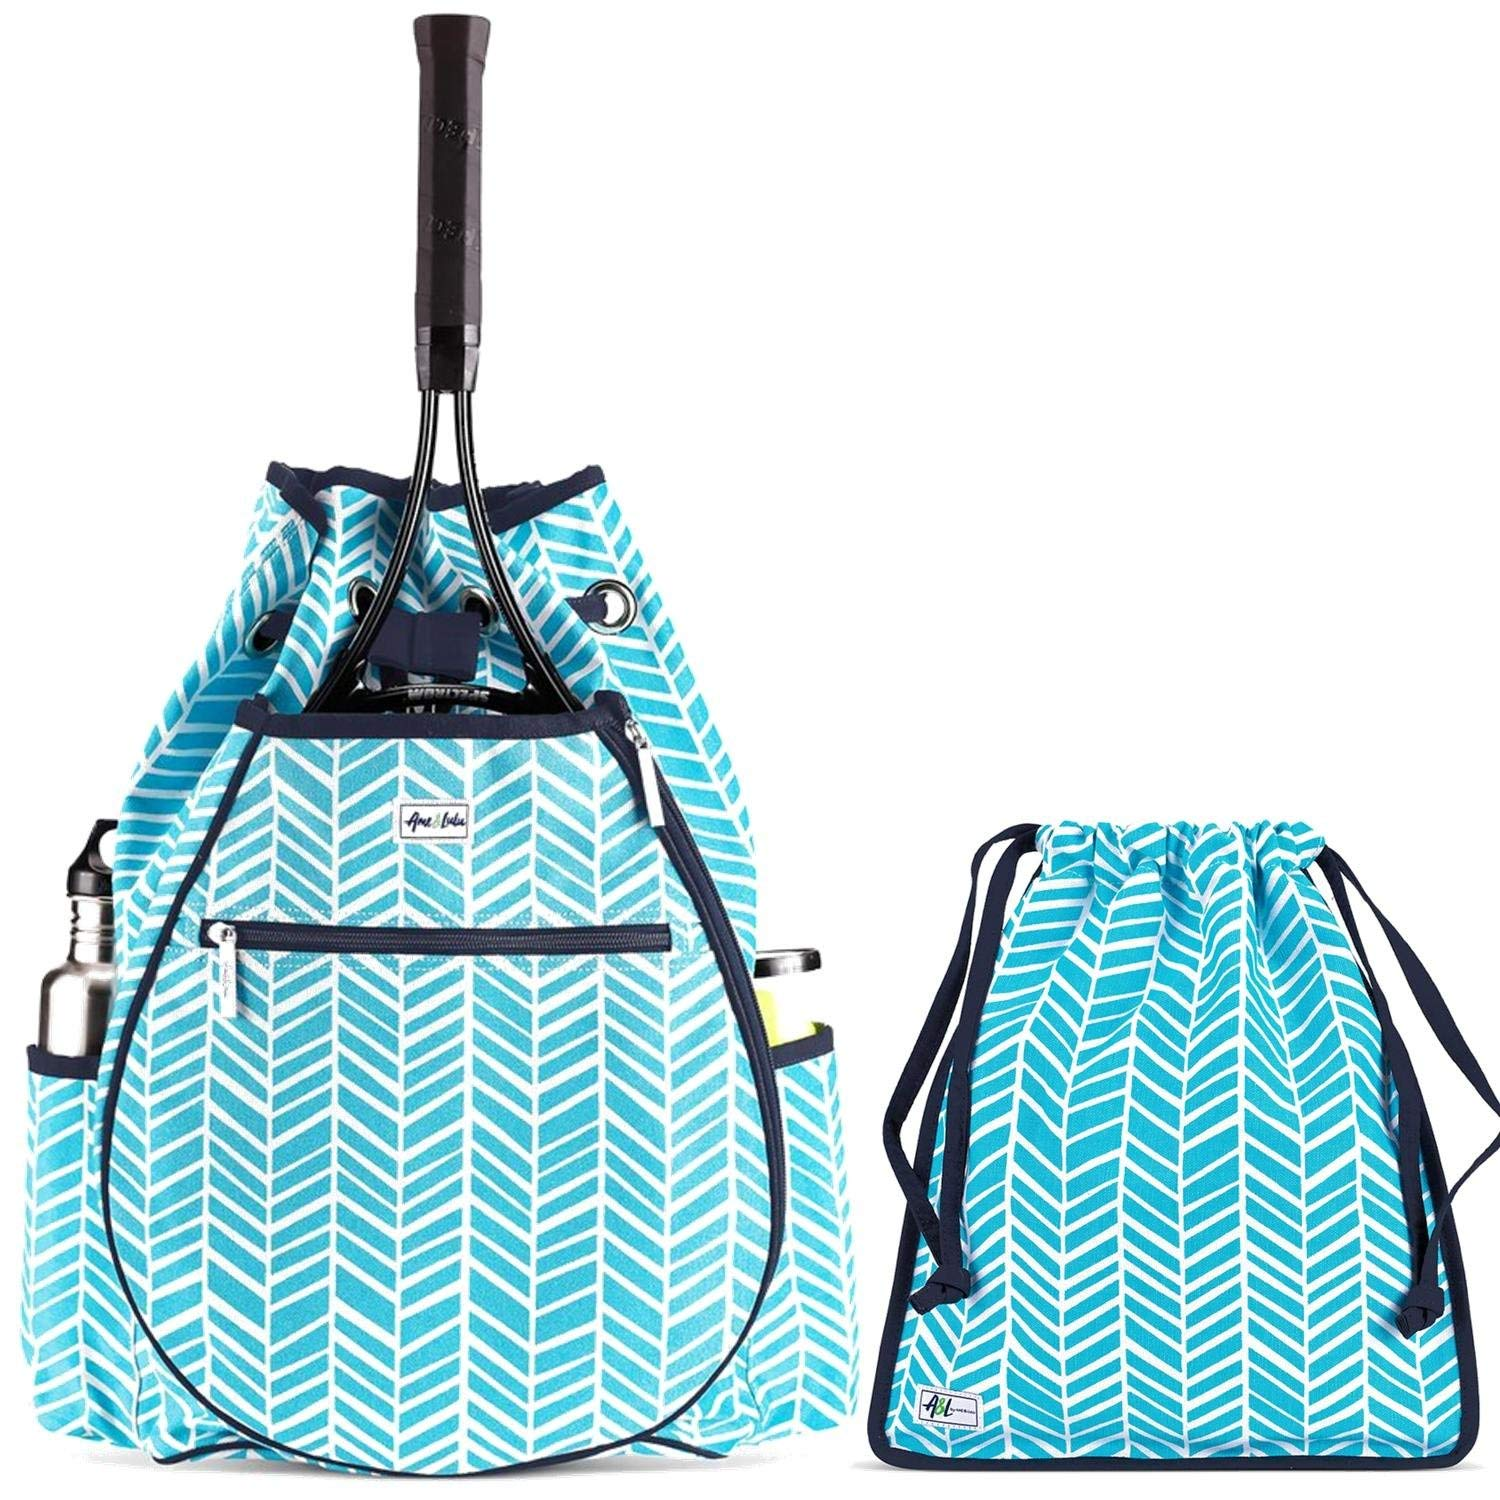 38a8ac0566 Get Quotations · Ame   Lulu Kingsley Women s Tennis Backpack and Matching  ...